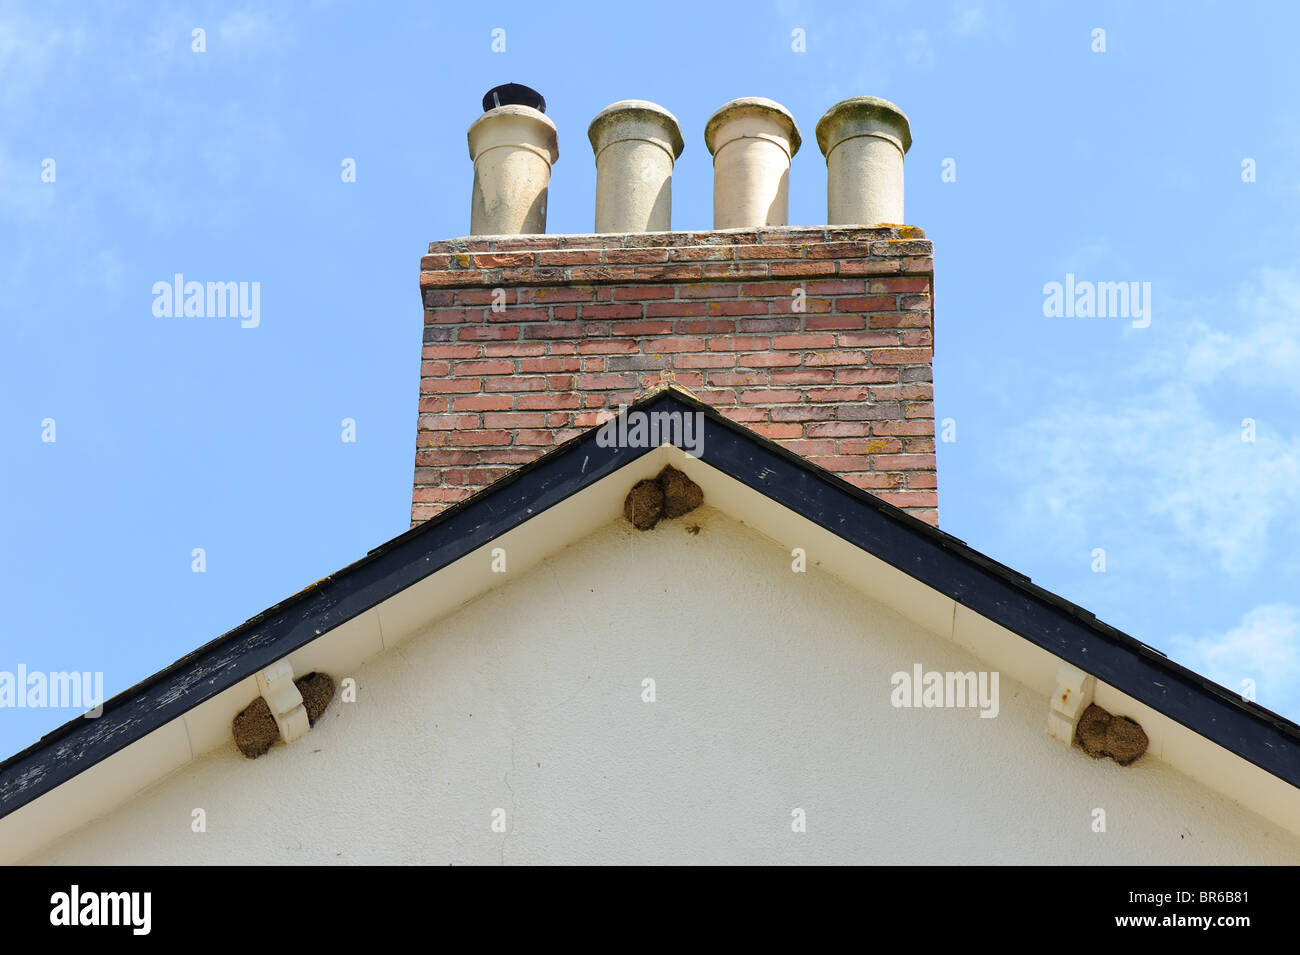 House martin nesting colony on the gable end of a house - Stock Image